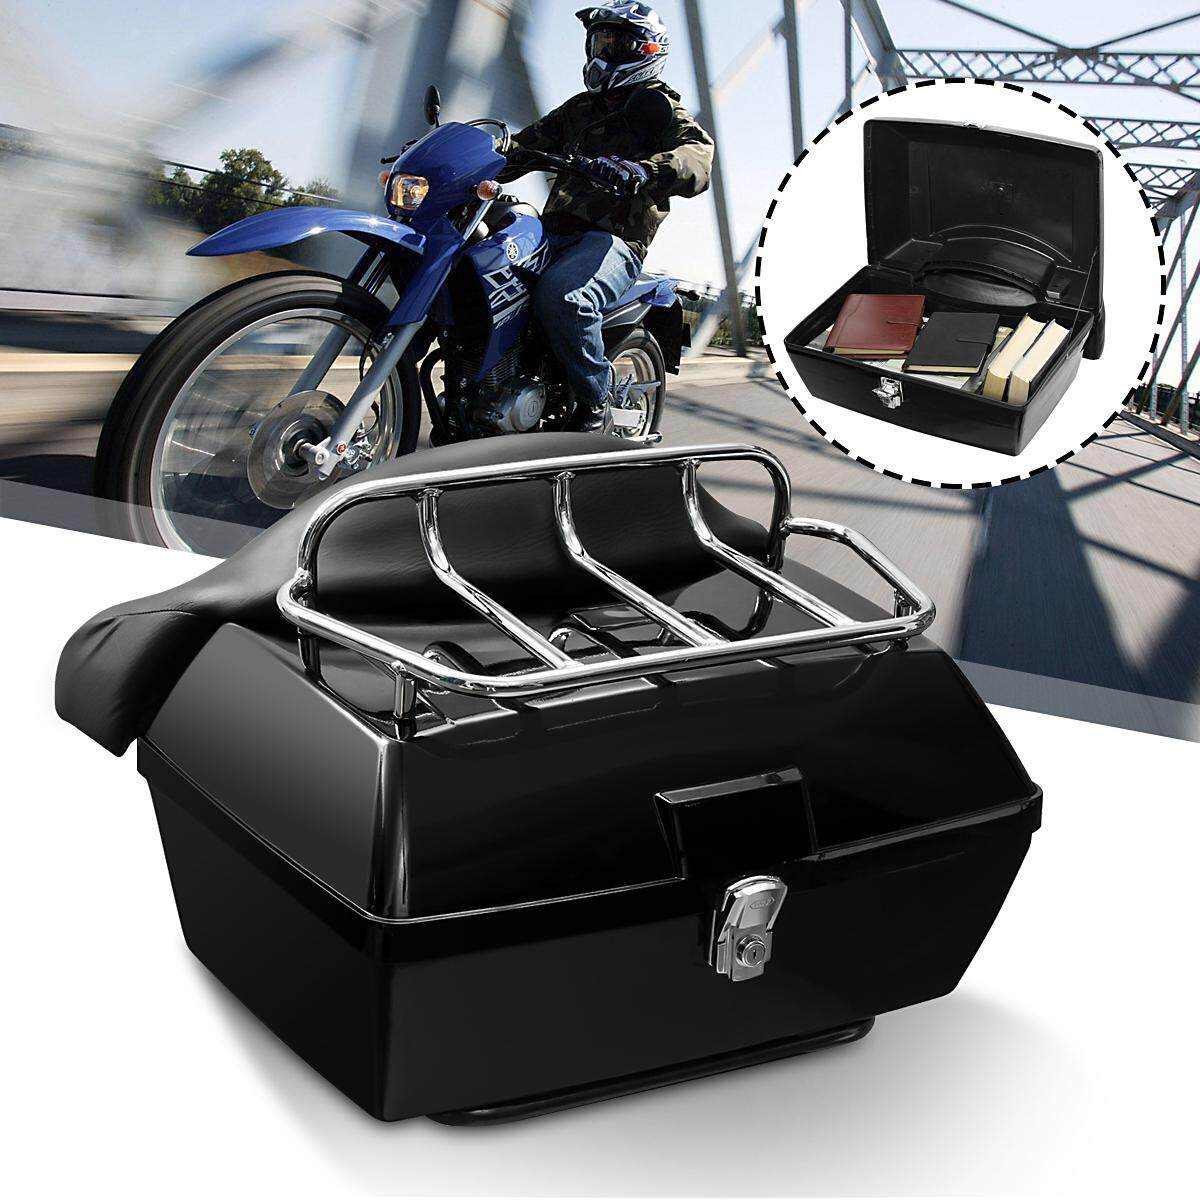 【Hot Sale】Motorcycle back top box case universal scooter motorbike rear luggage black 48L